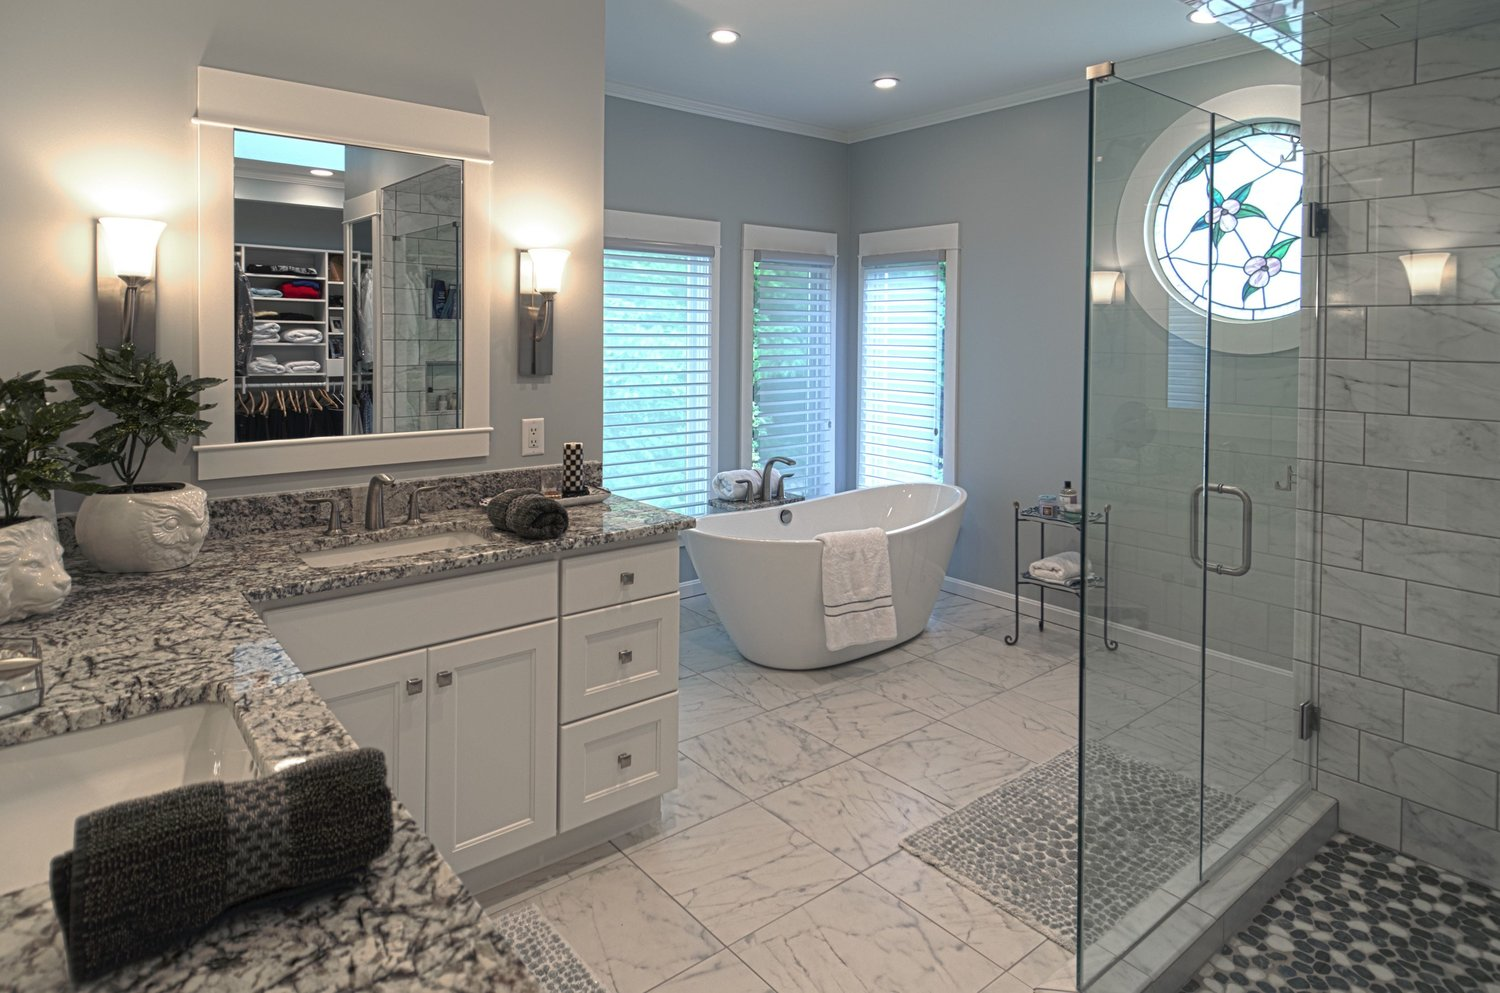 How Much Does Bathroom Remodel Cost In Los Angeles